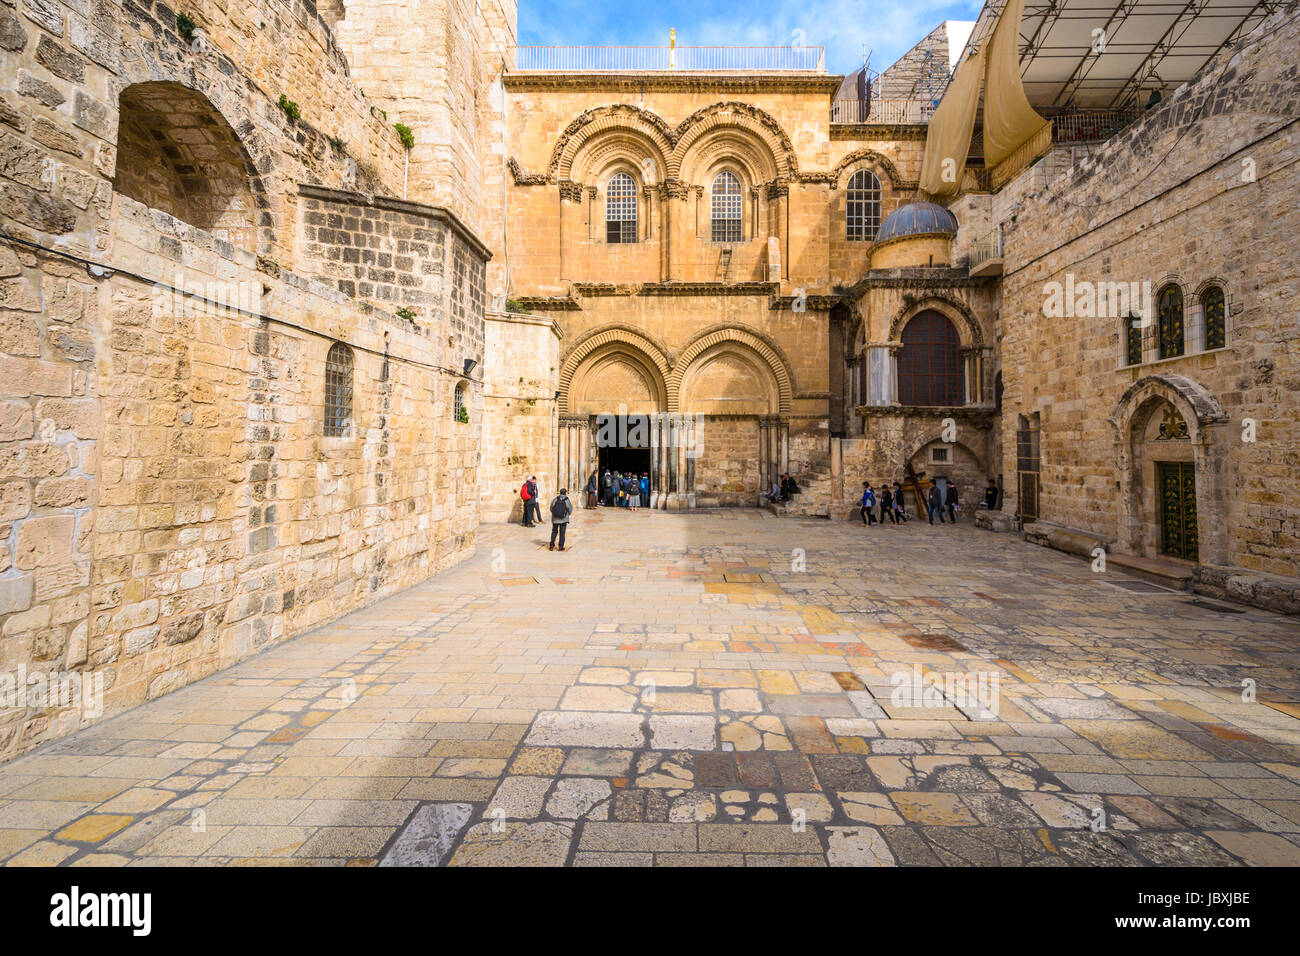 Jerusalem, Israel at  The Church of the Holy Sepulchre. - Stock Image